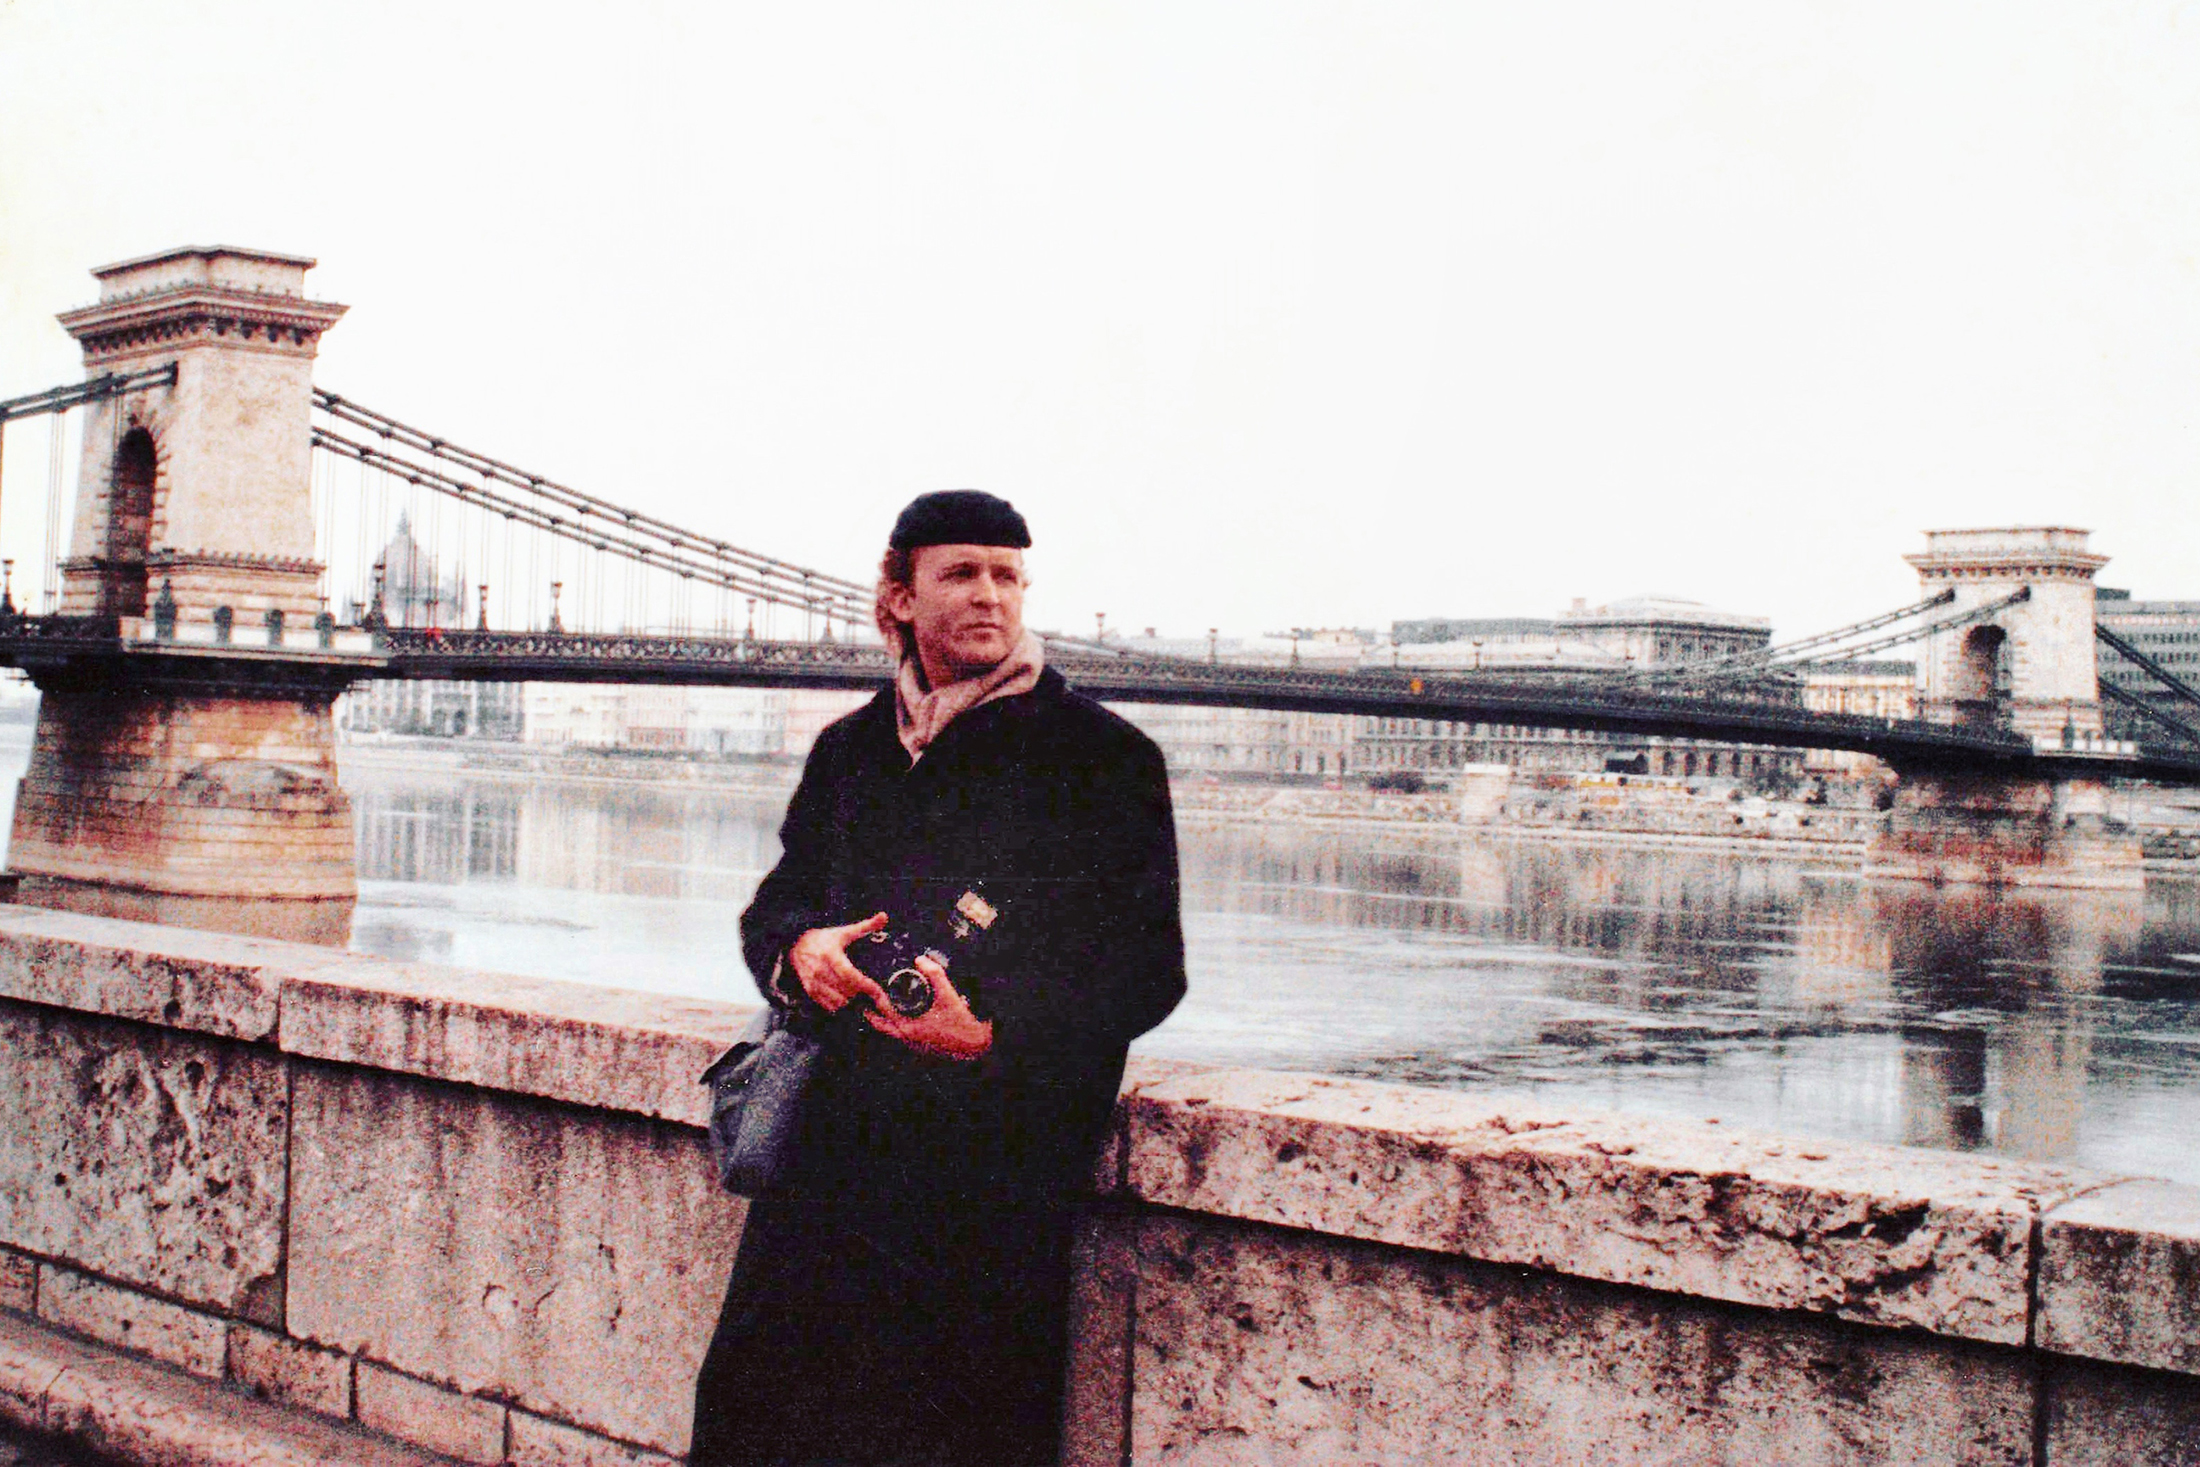 A 1990 photo of Frank Deese holding a camera with water and a bridge in the background.